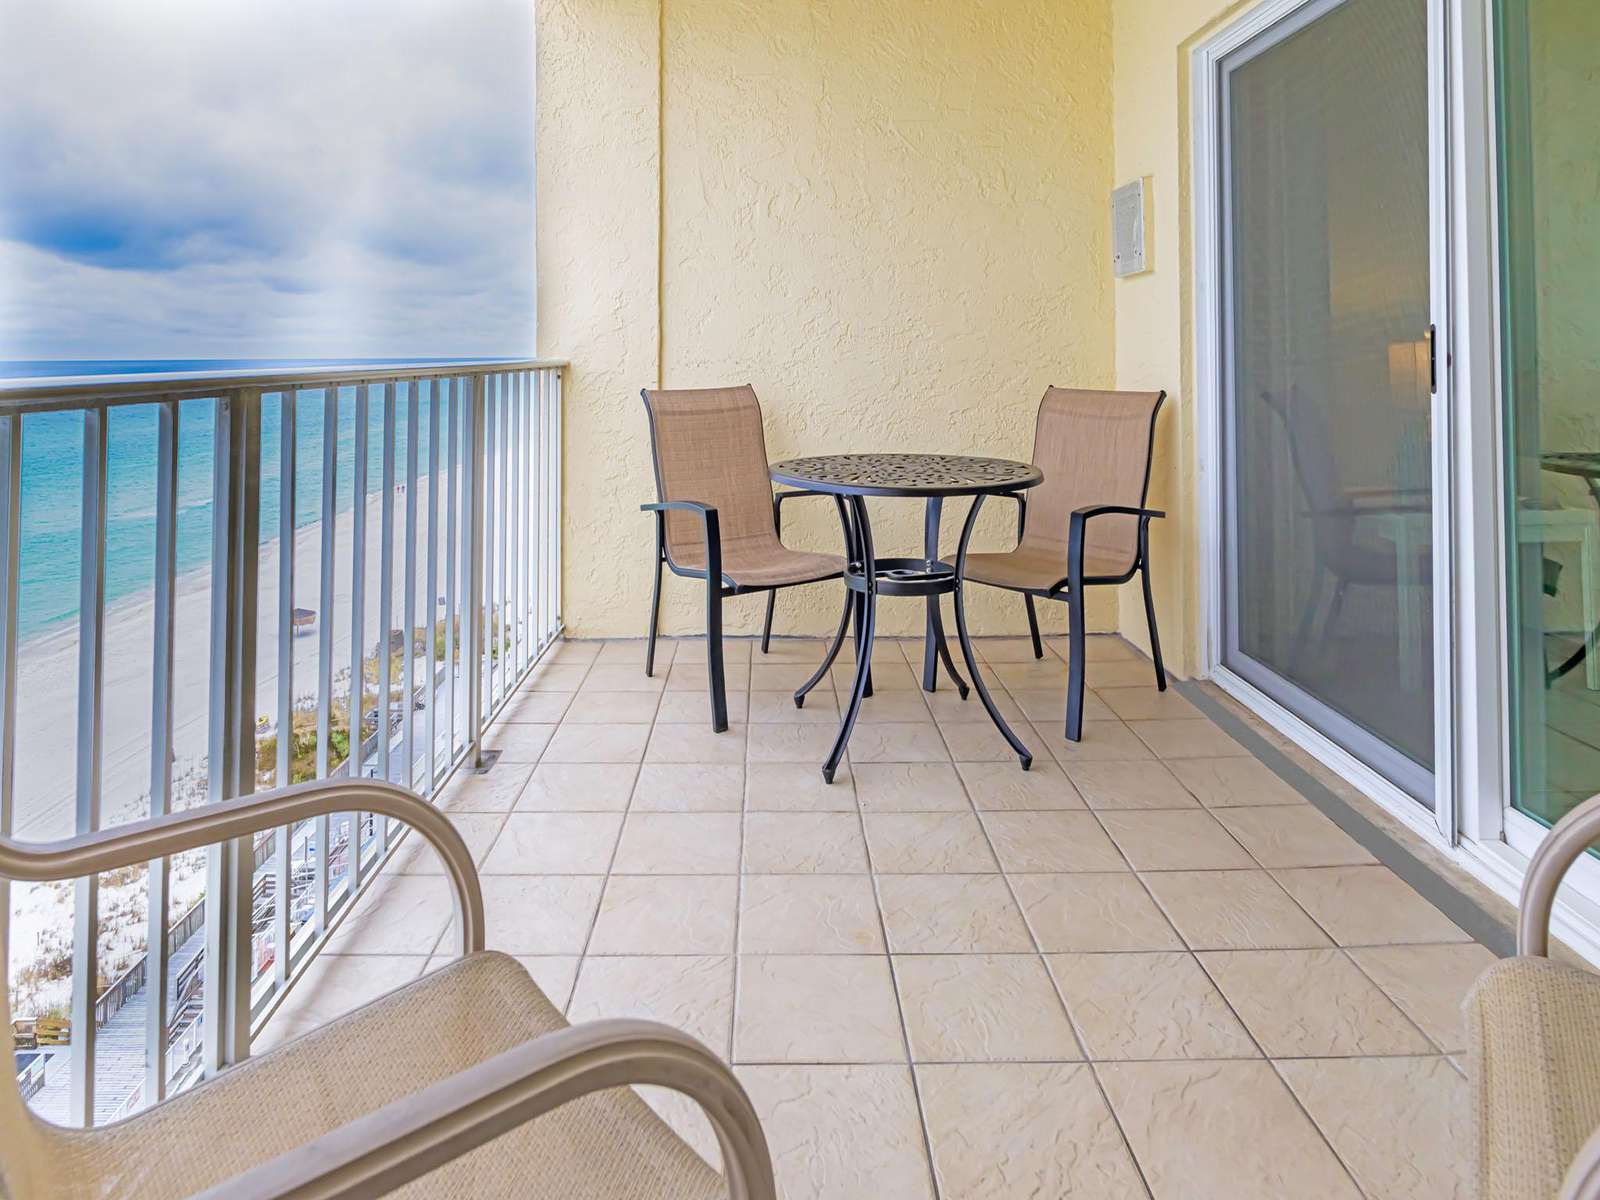 Your own private balcony on the 10th floor!